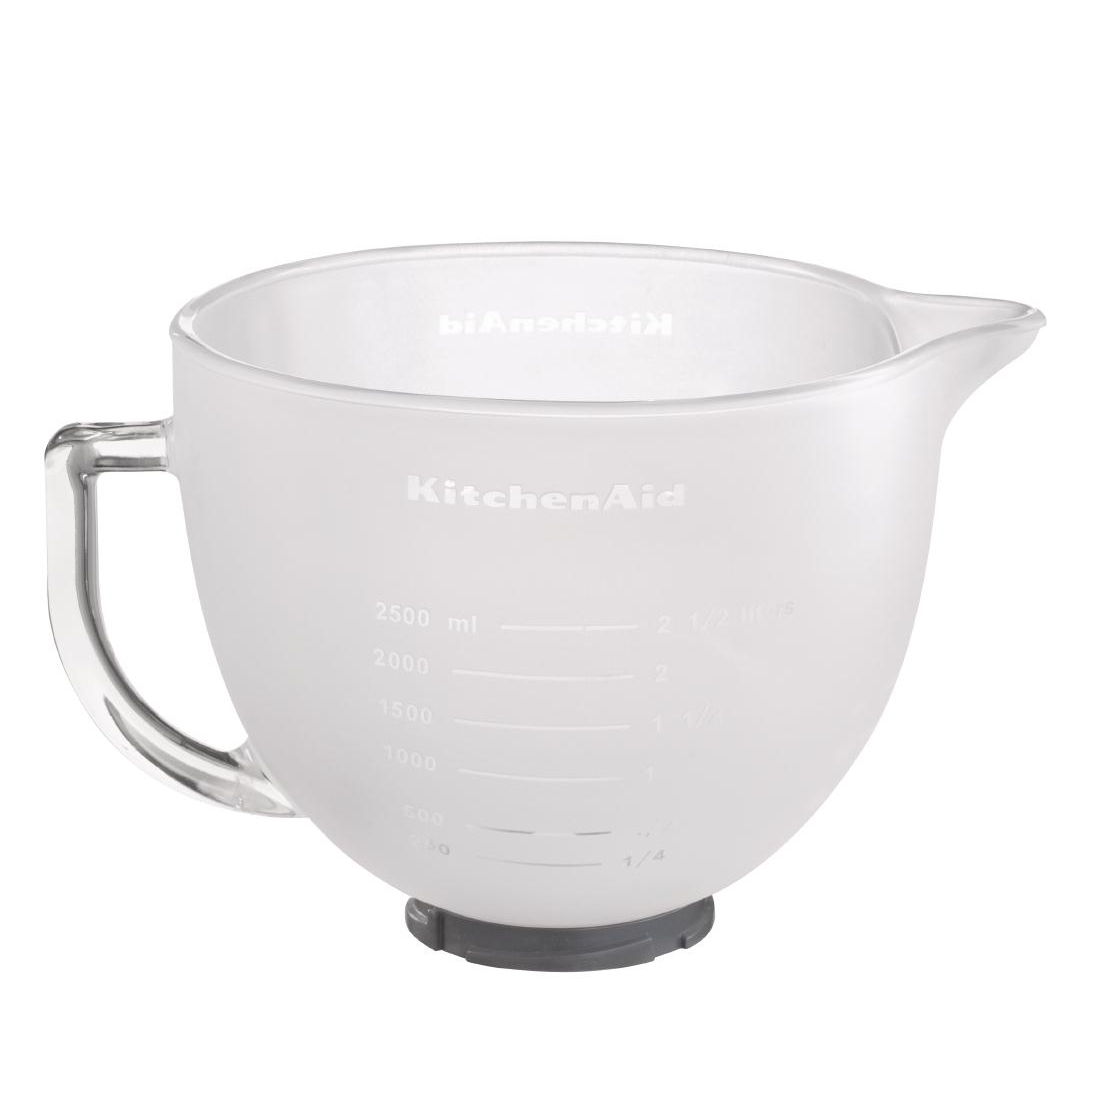 KitchenAid 4.8Ltr Frosted Glass Bowl ref 5K5GBF